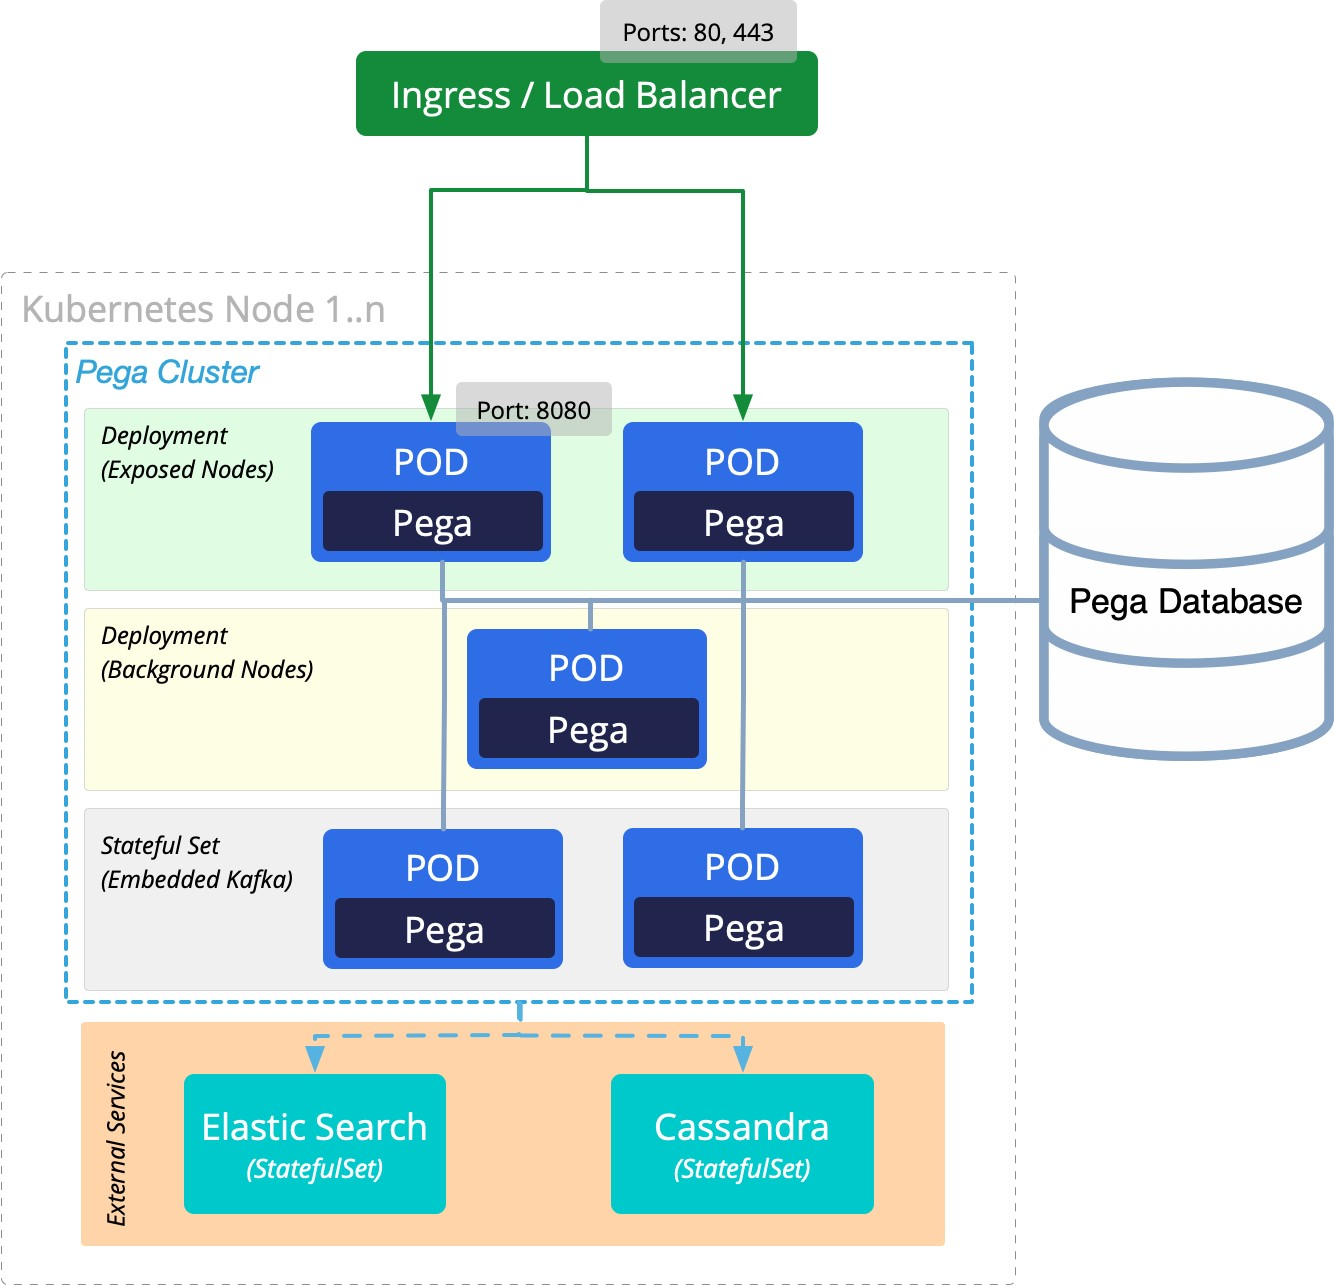 Pega nodes deployed into various tiers and services in a network topology